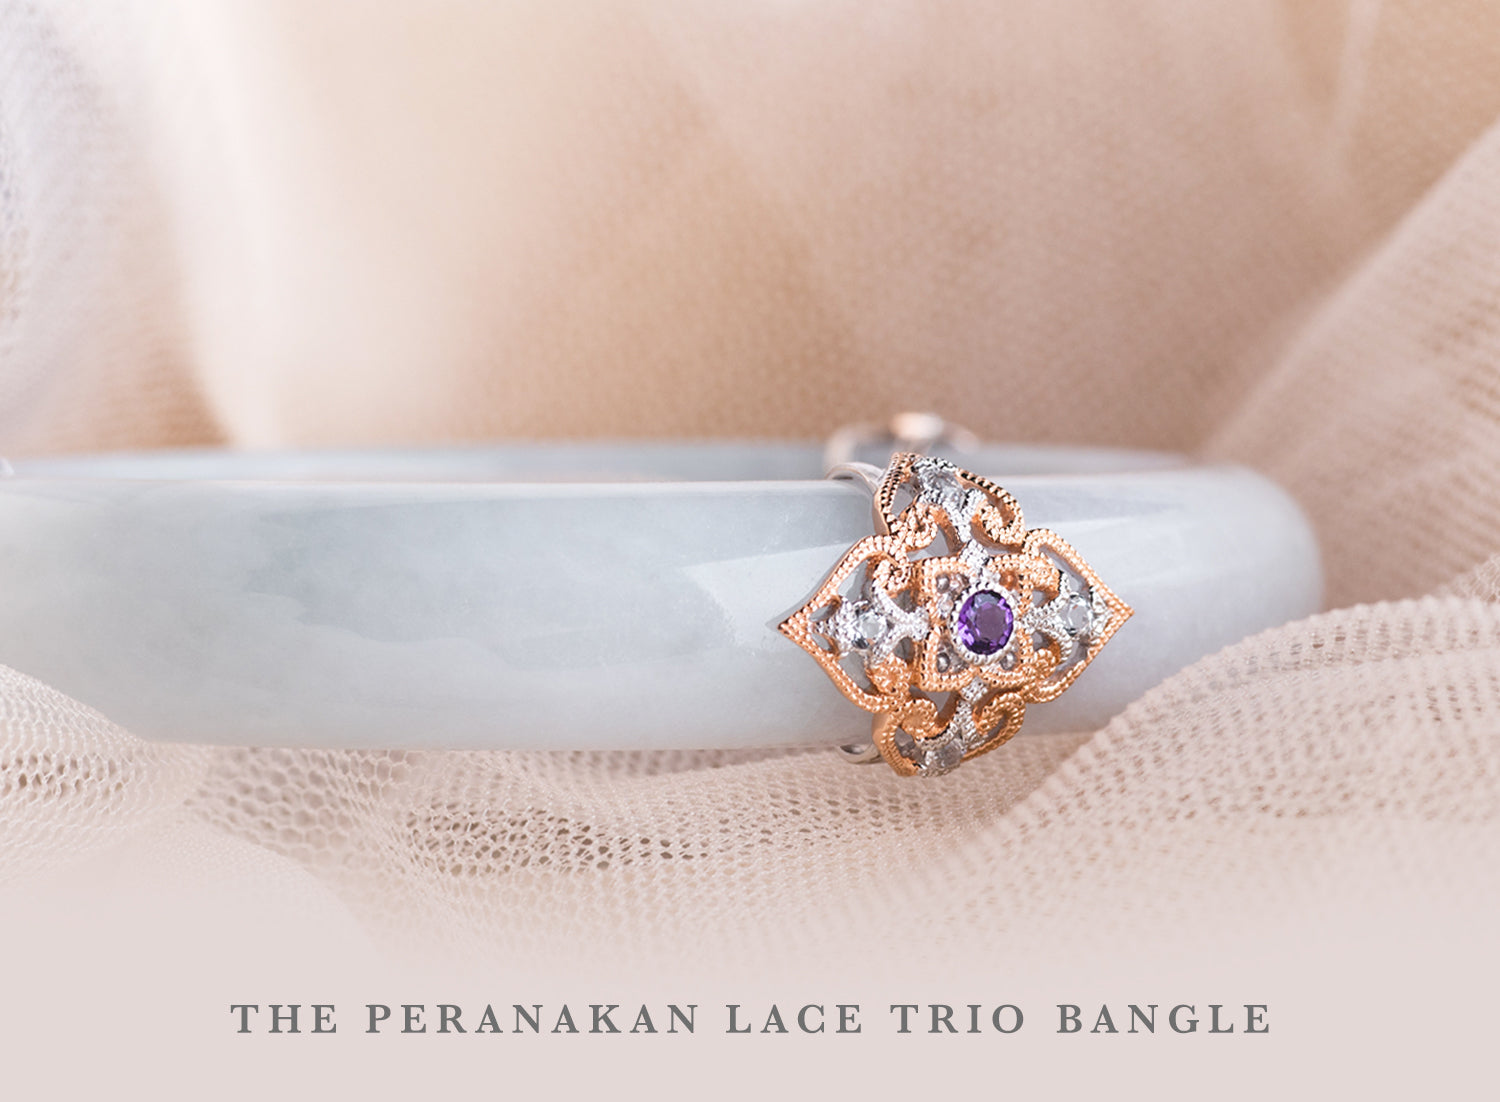 Peranakan Lace Trio Bangle